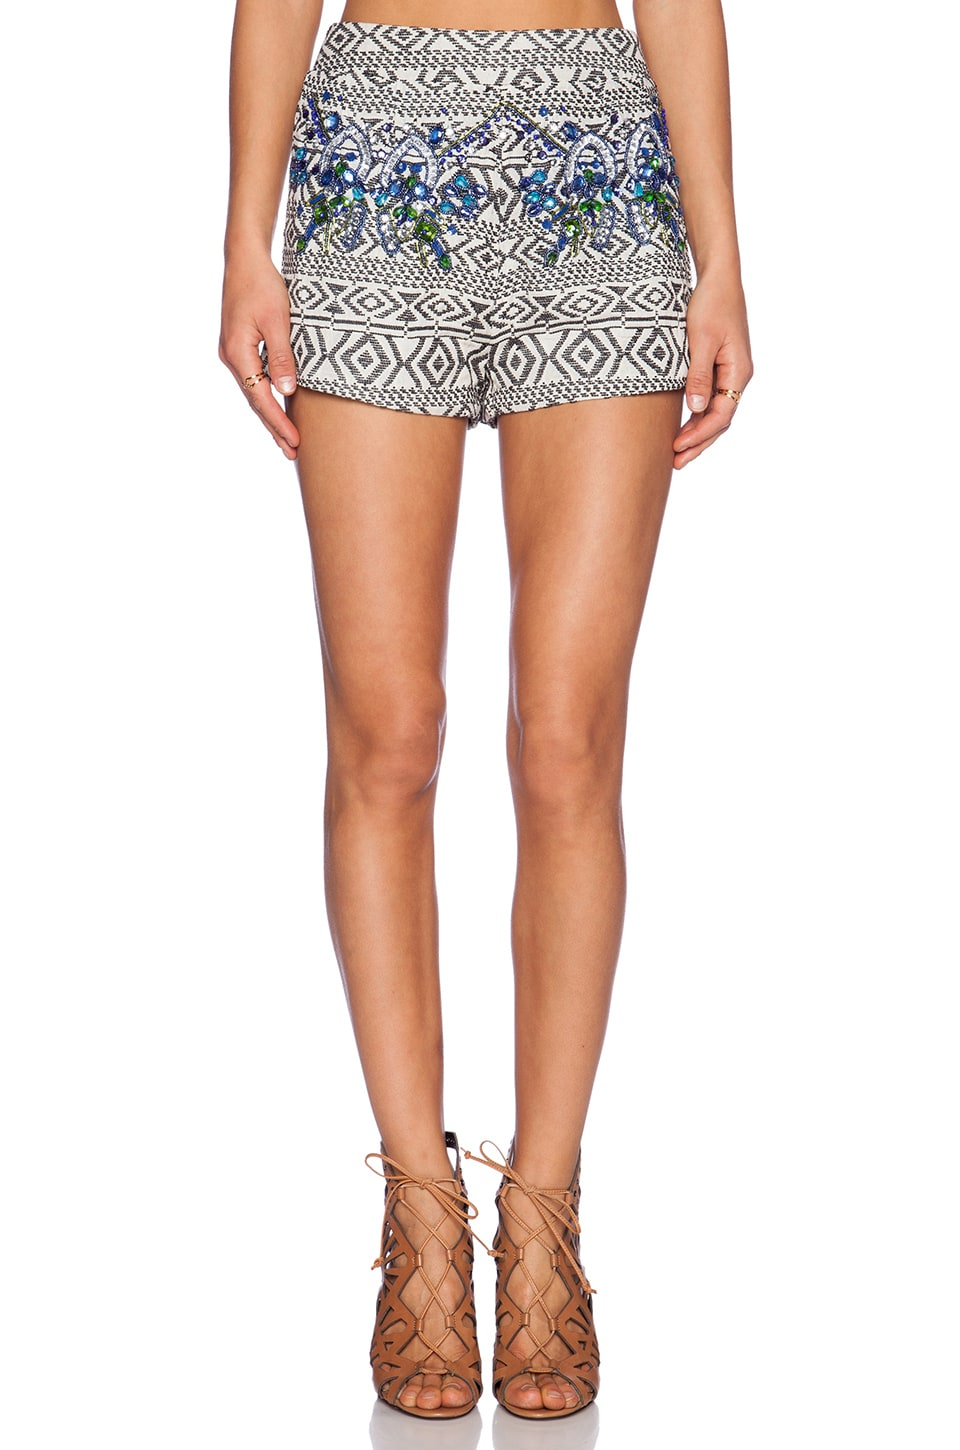 Tularosa Life of the Party Shorts in Variation Stripe